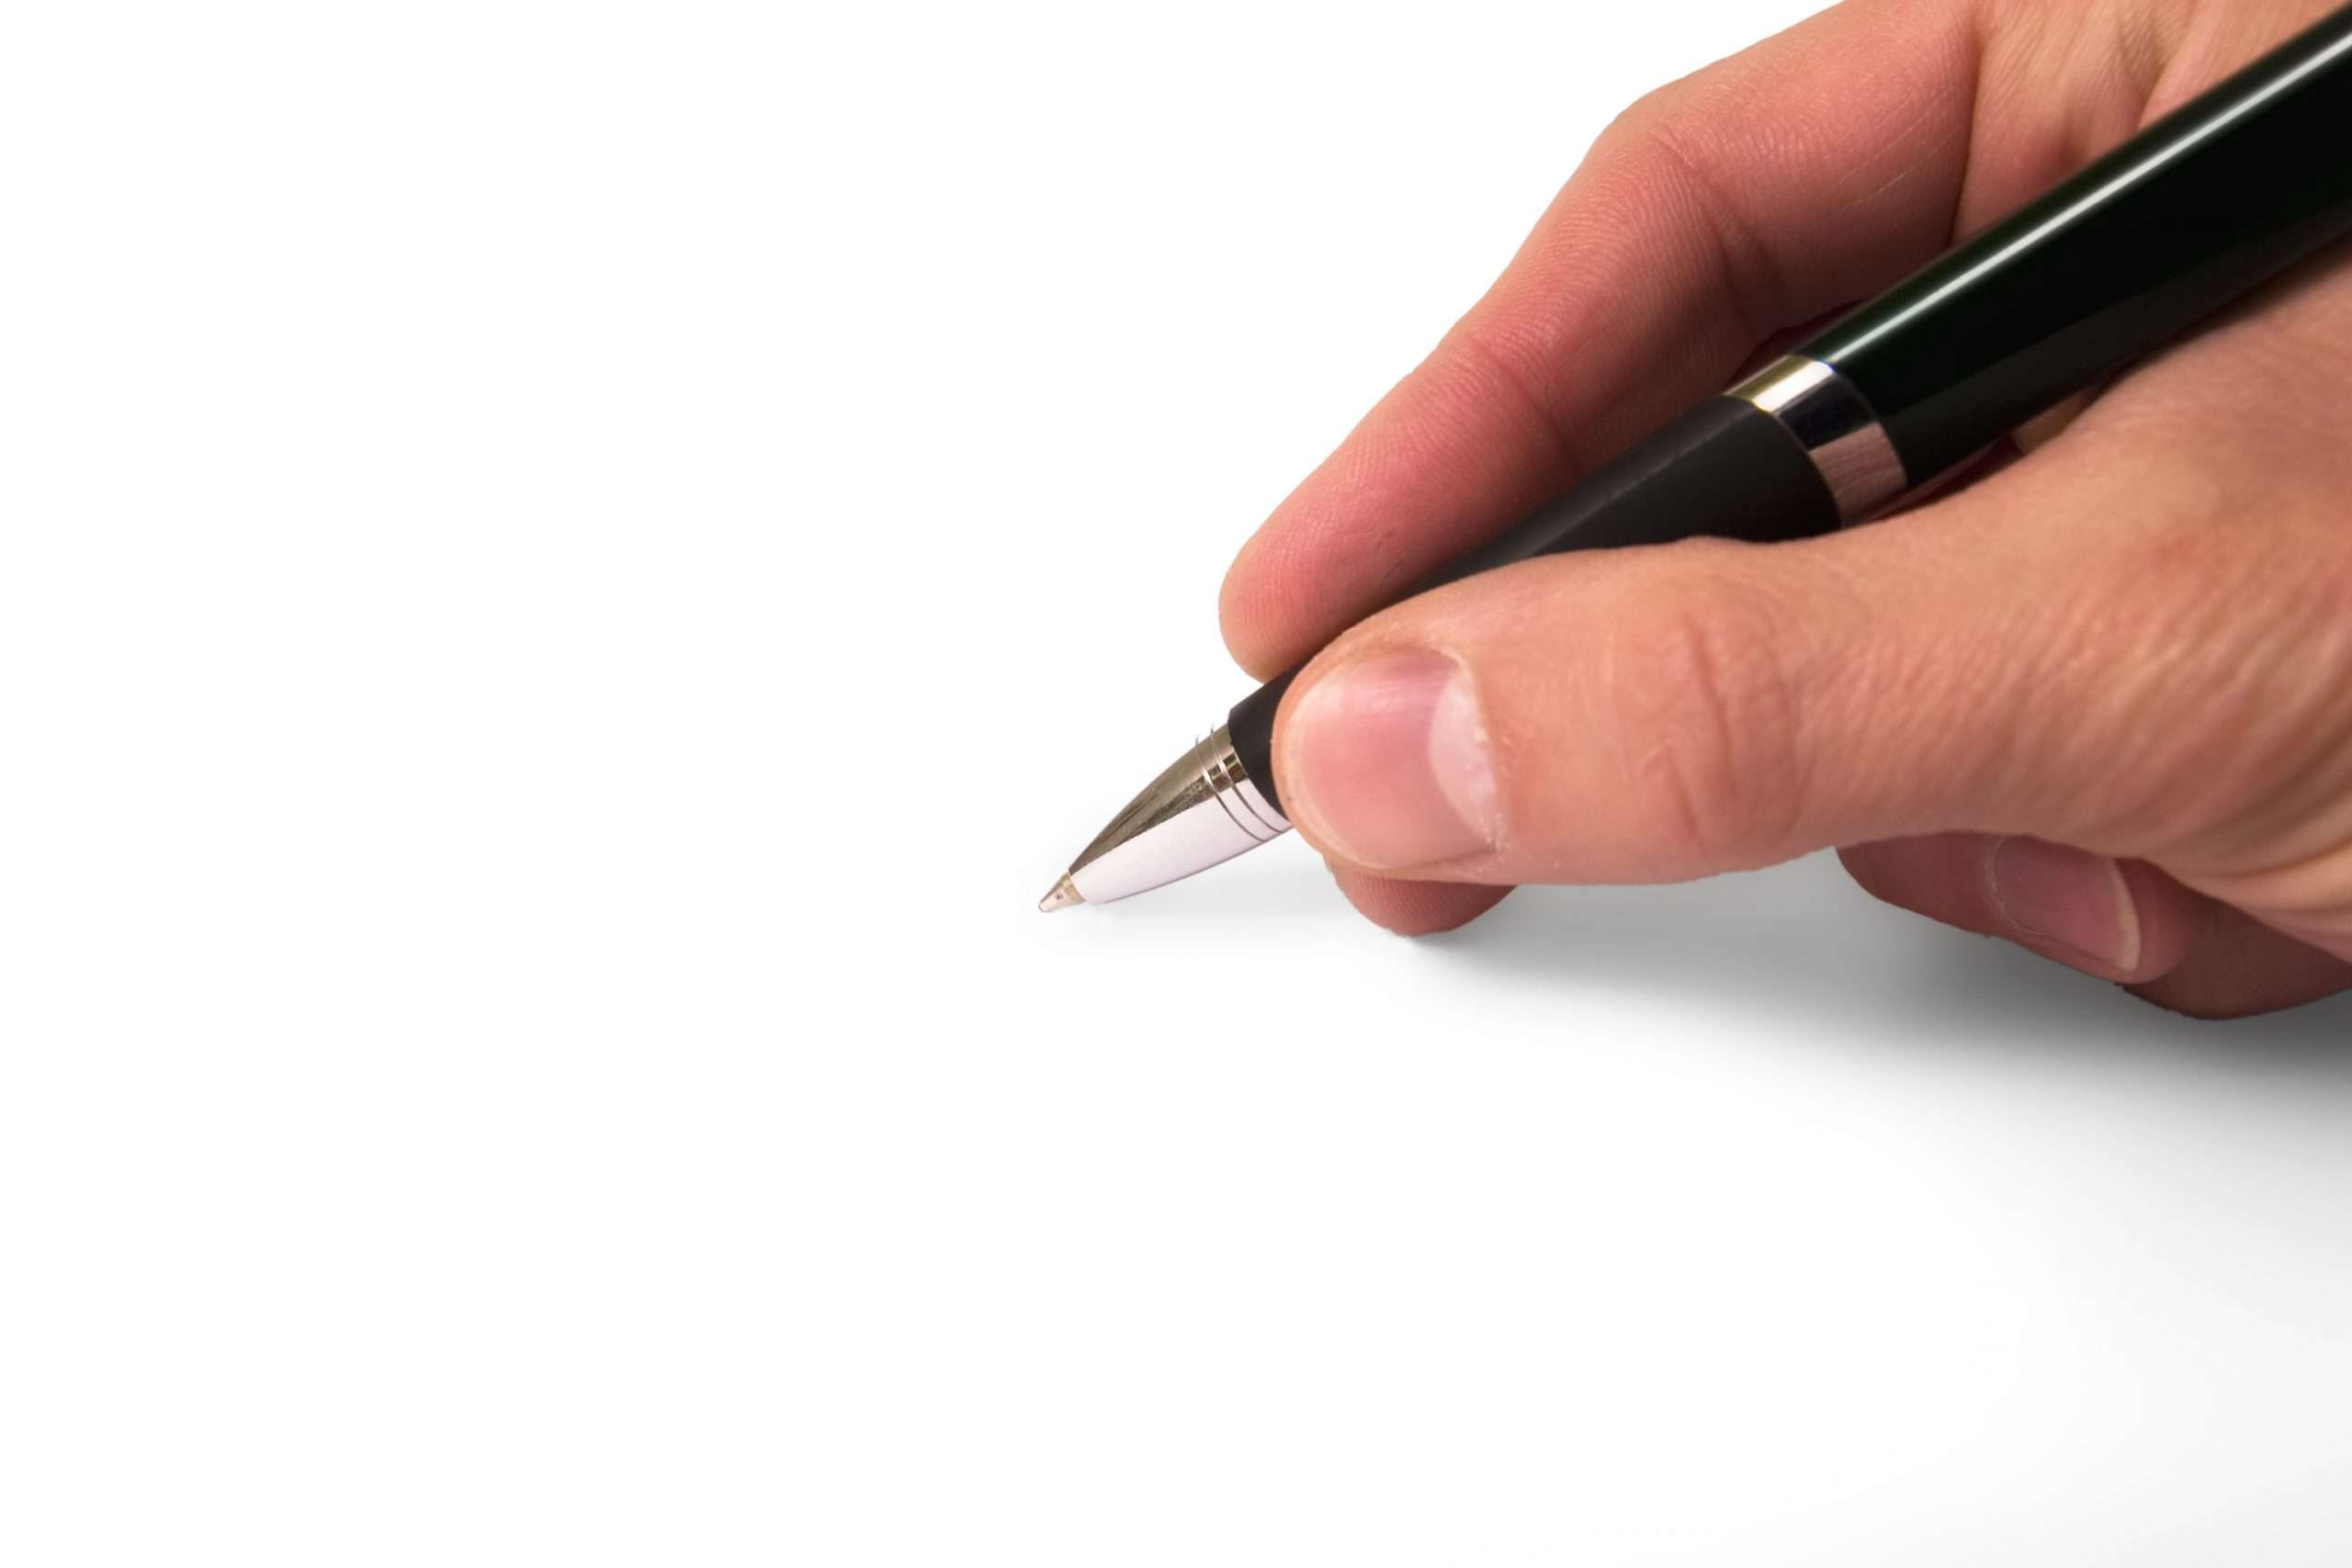 One of a business's authorized signers prepares to sign a contract